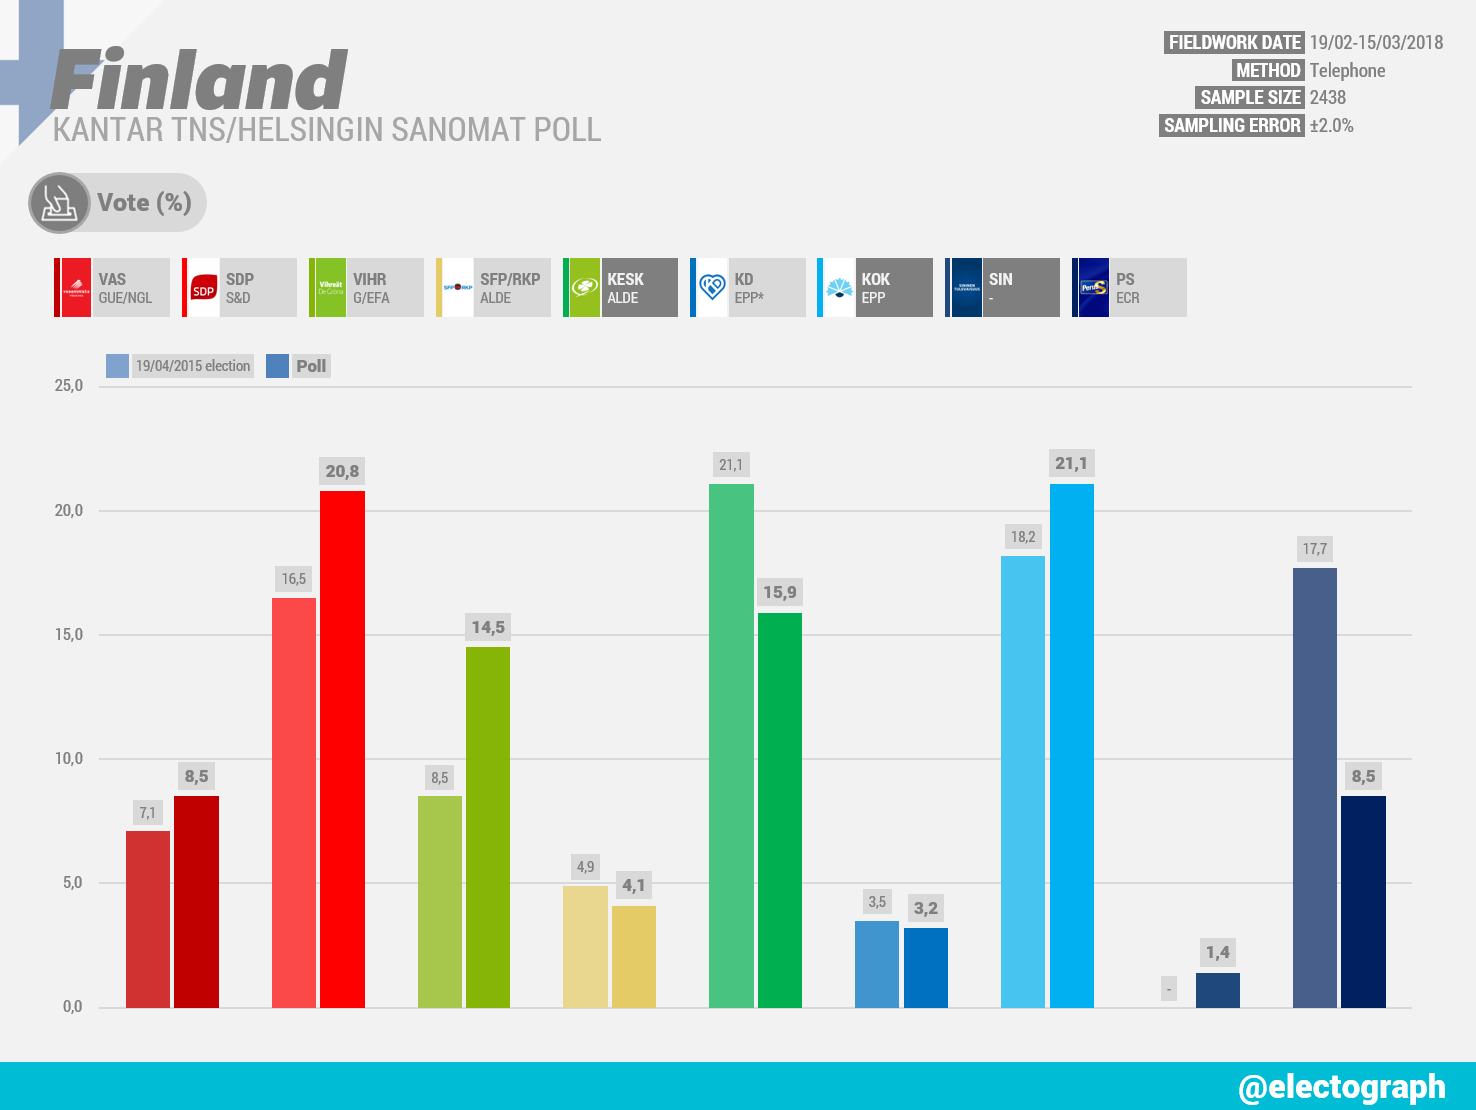 FINLAND Kantar TNS poll chart for Helsingin Sanomat, March 2018